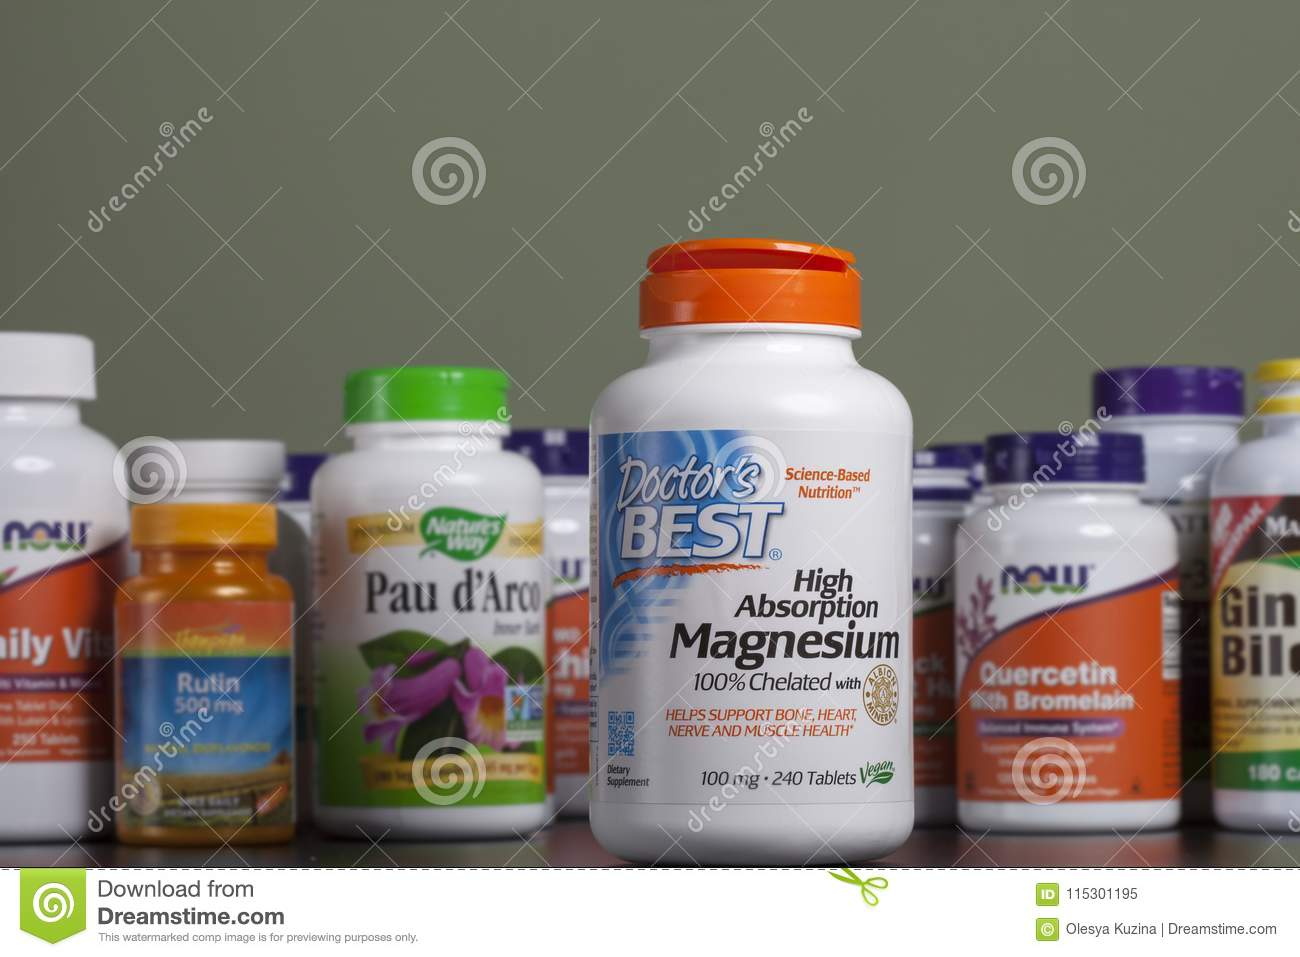 KYIV, UKRAINE - April 24, 2018 A bottle of magnesium in capsules. Some bottles of vitamins and dietary supplements are behind it.